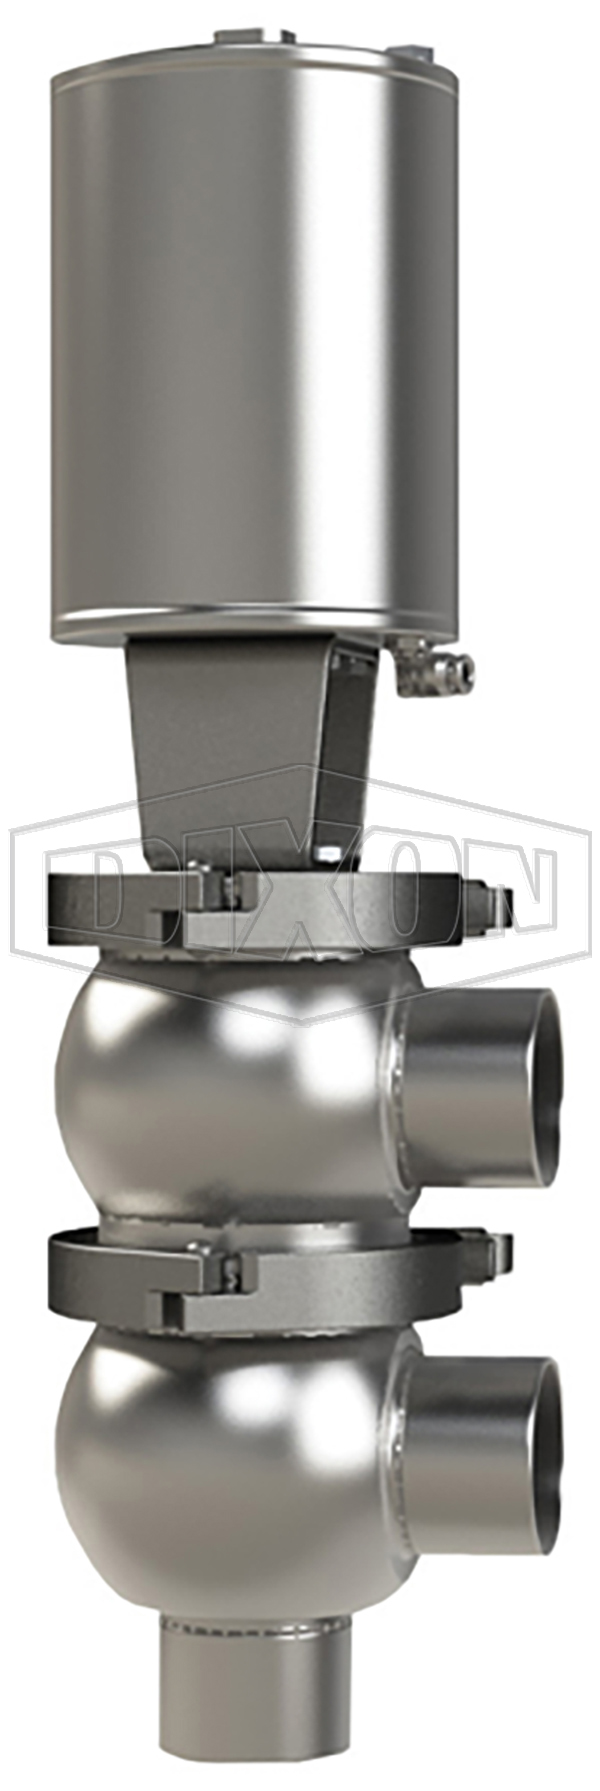 SSV Series Single Seat Valve, Divert F Body, Weld, Spring Return Actuator (Air-To-Raise)